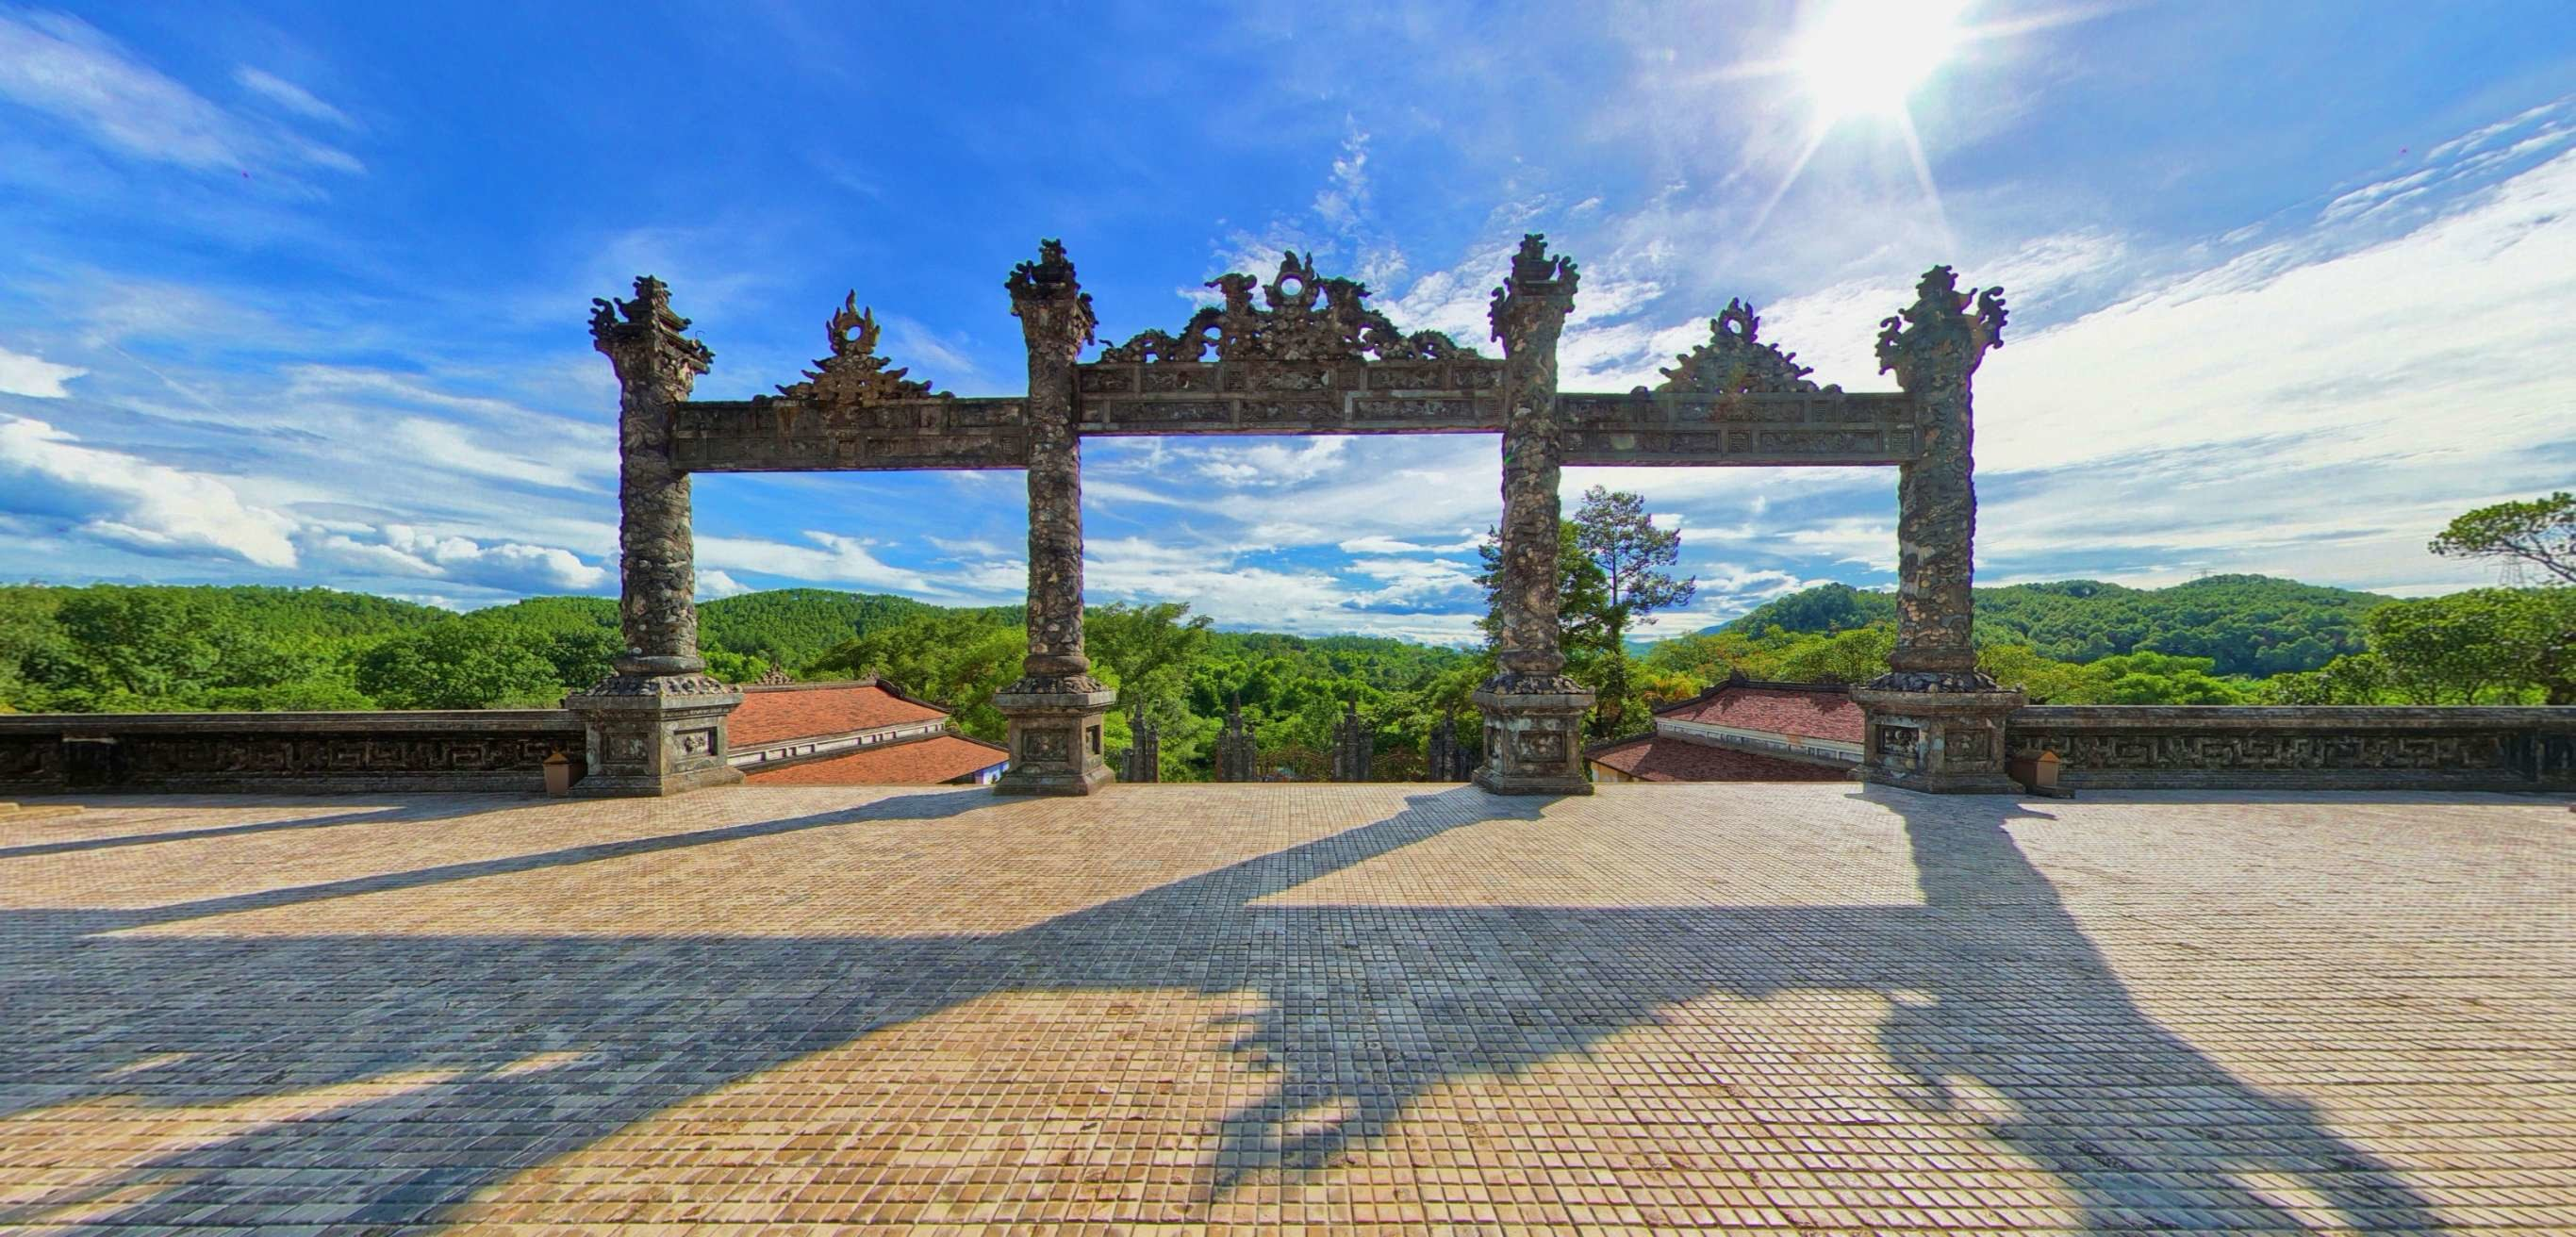 15-Day Secrets of Central and South Vietnam - Vietnam Itinerary